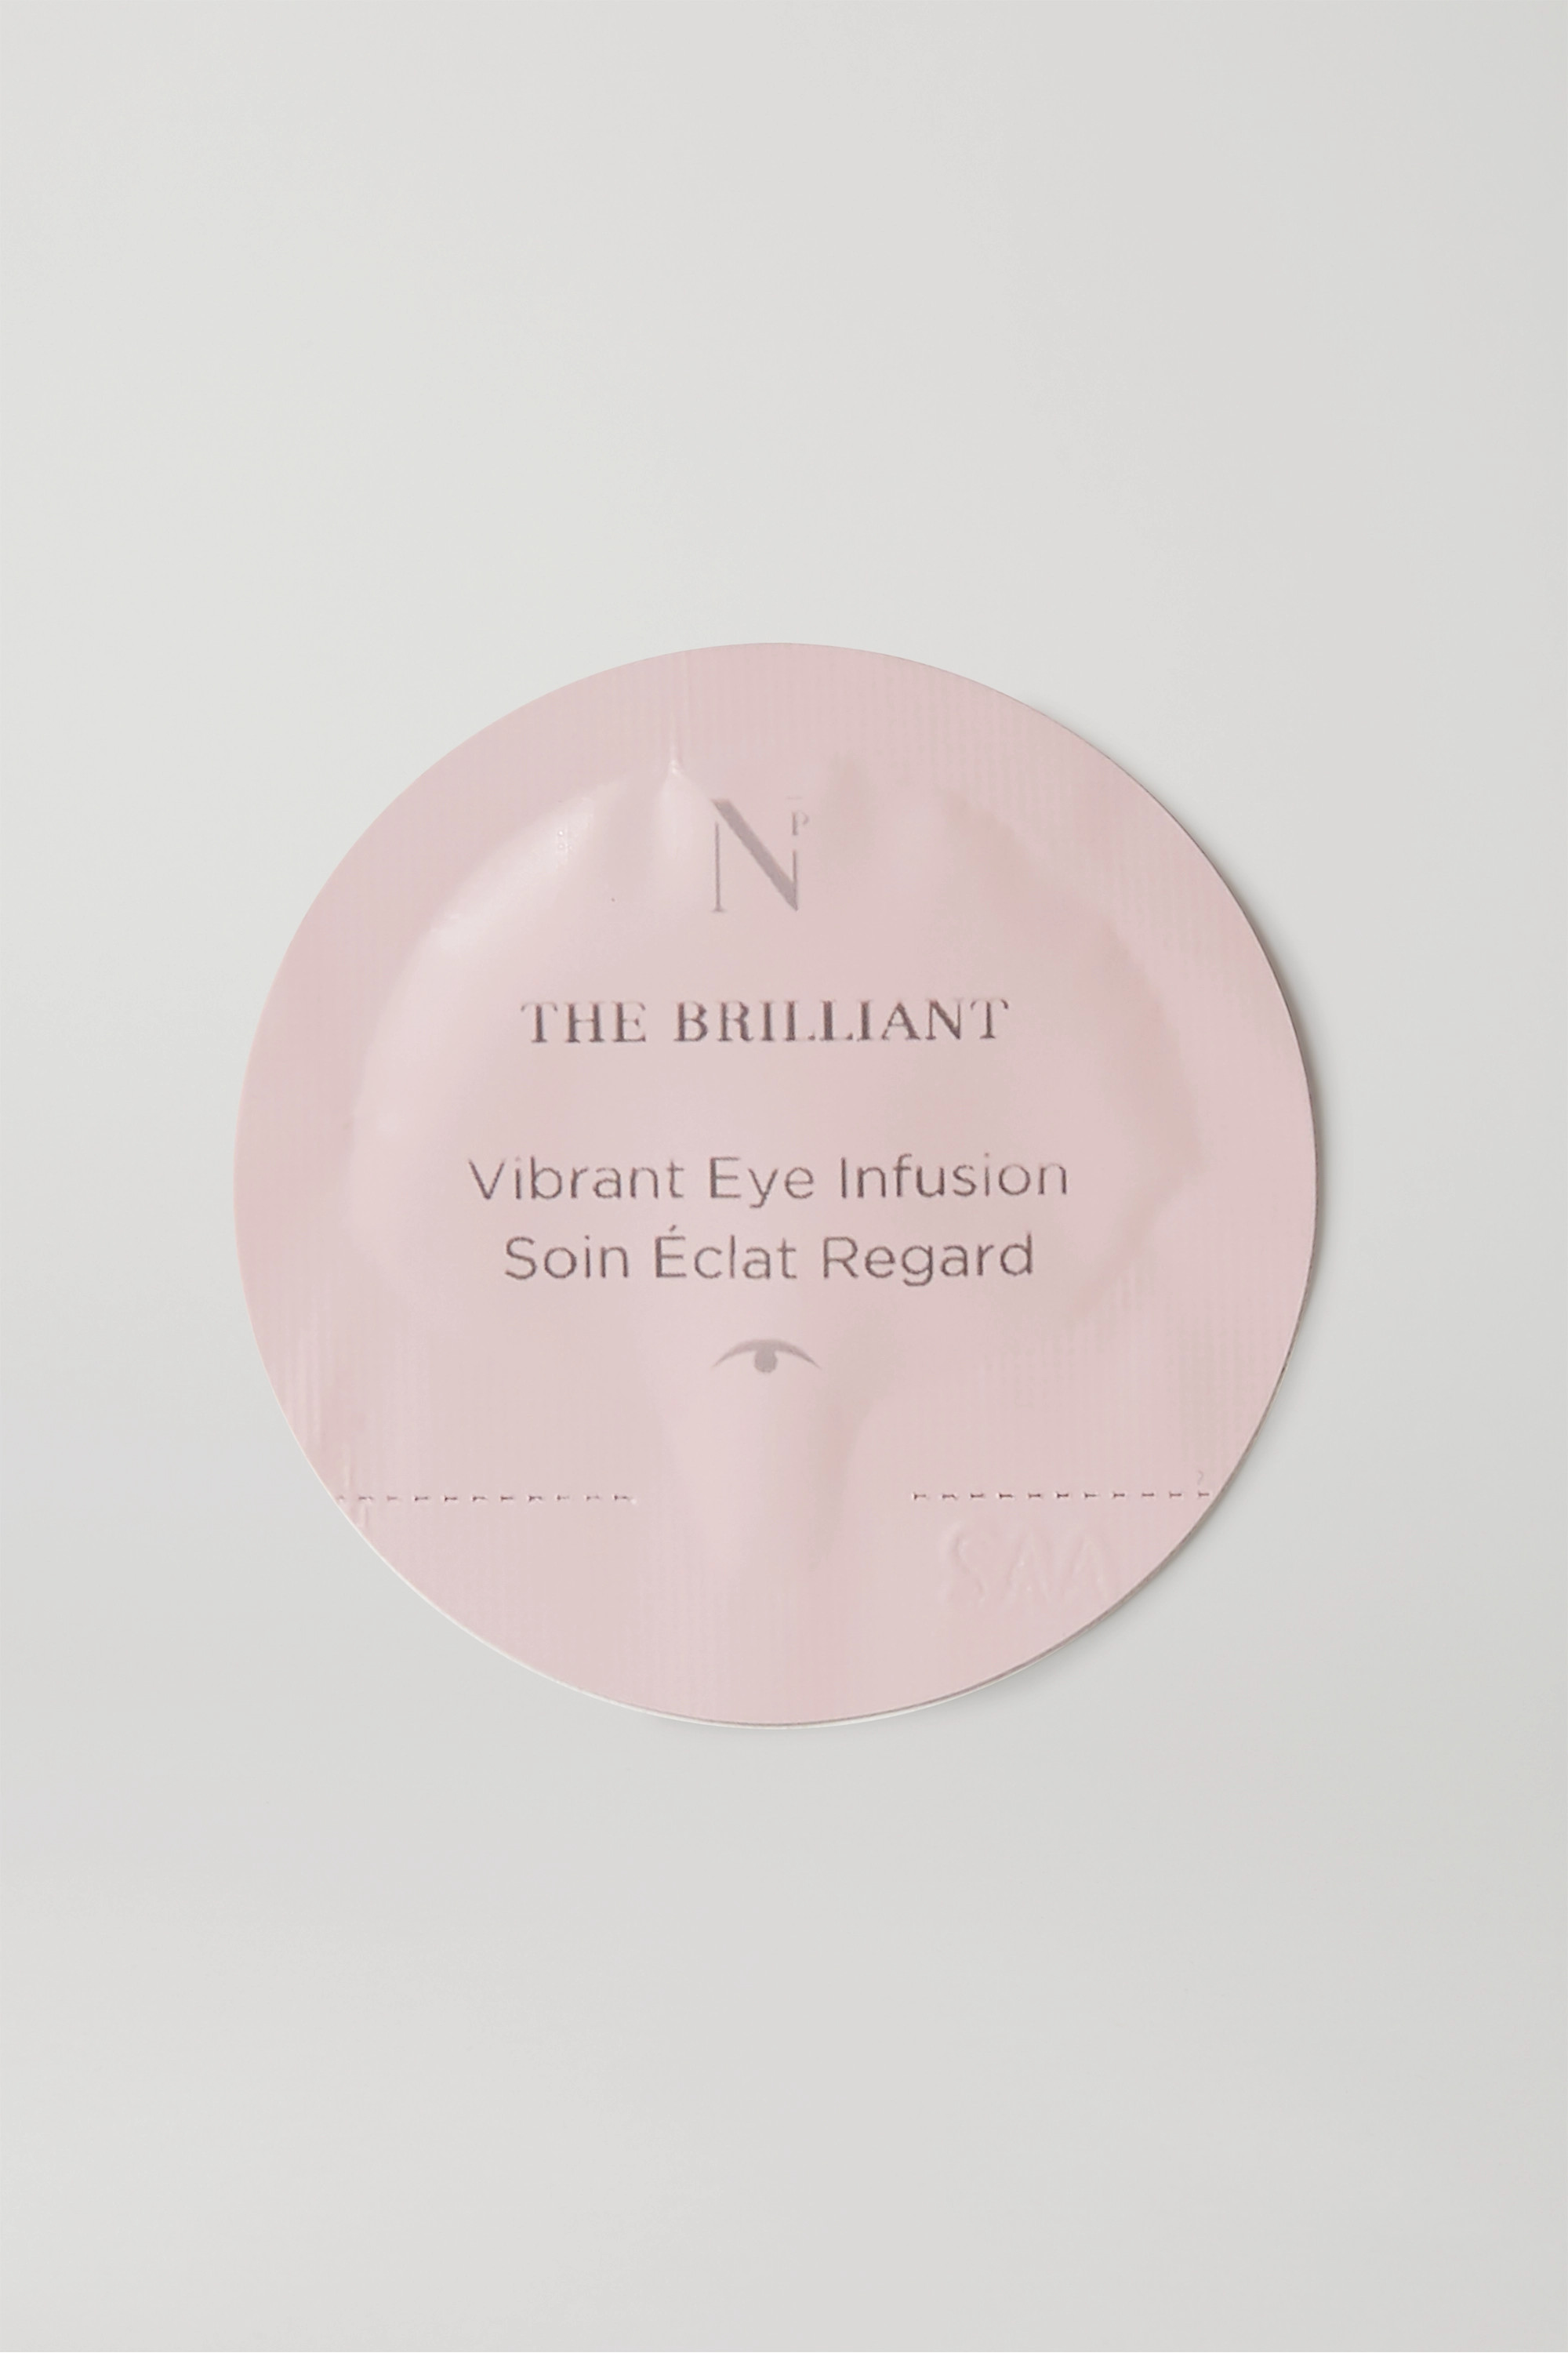 Noble Panacea The Brilliant Vibrant Eye Infusion, 30 x 0.3ml